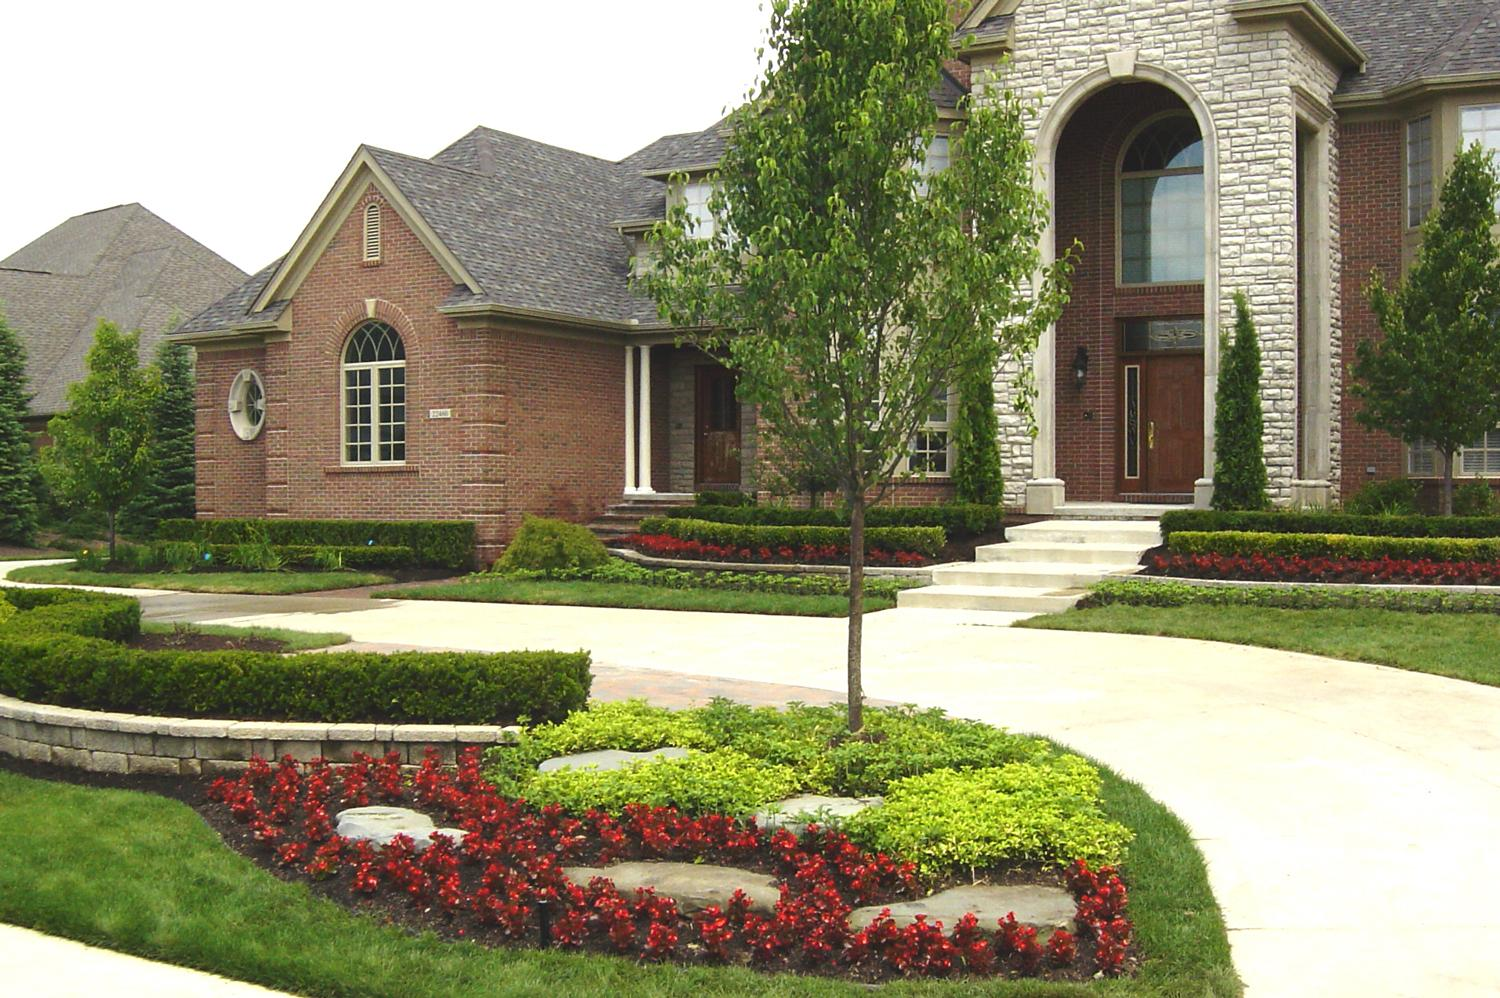 Front yard landscaping ideas dream house experience for Landscaping your front yard